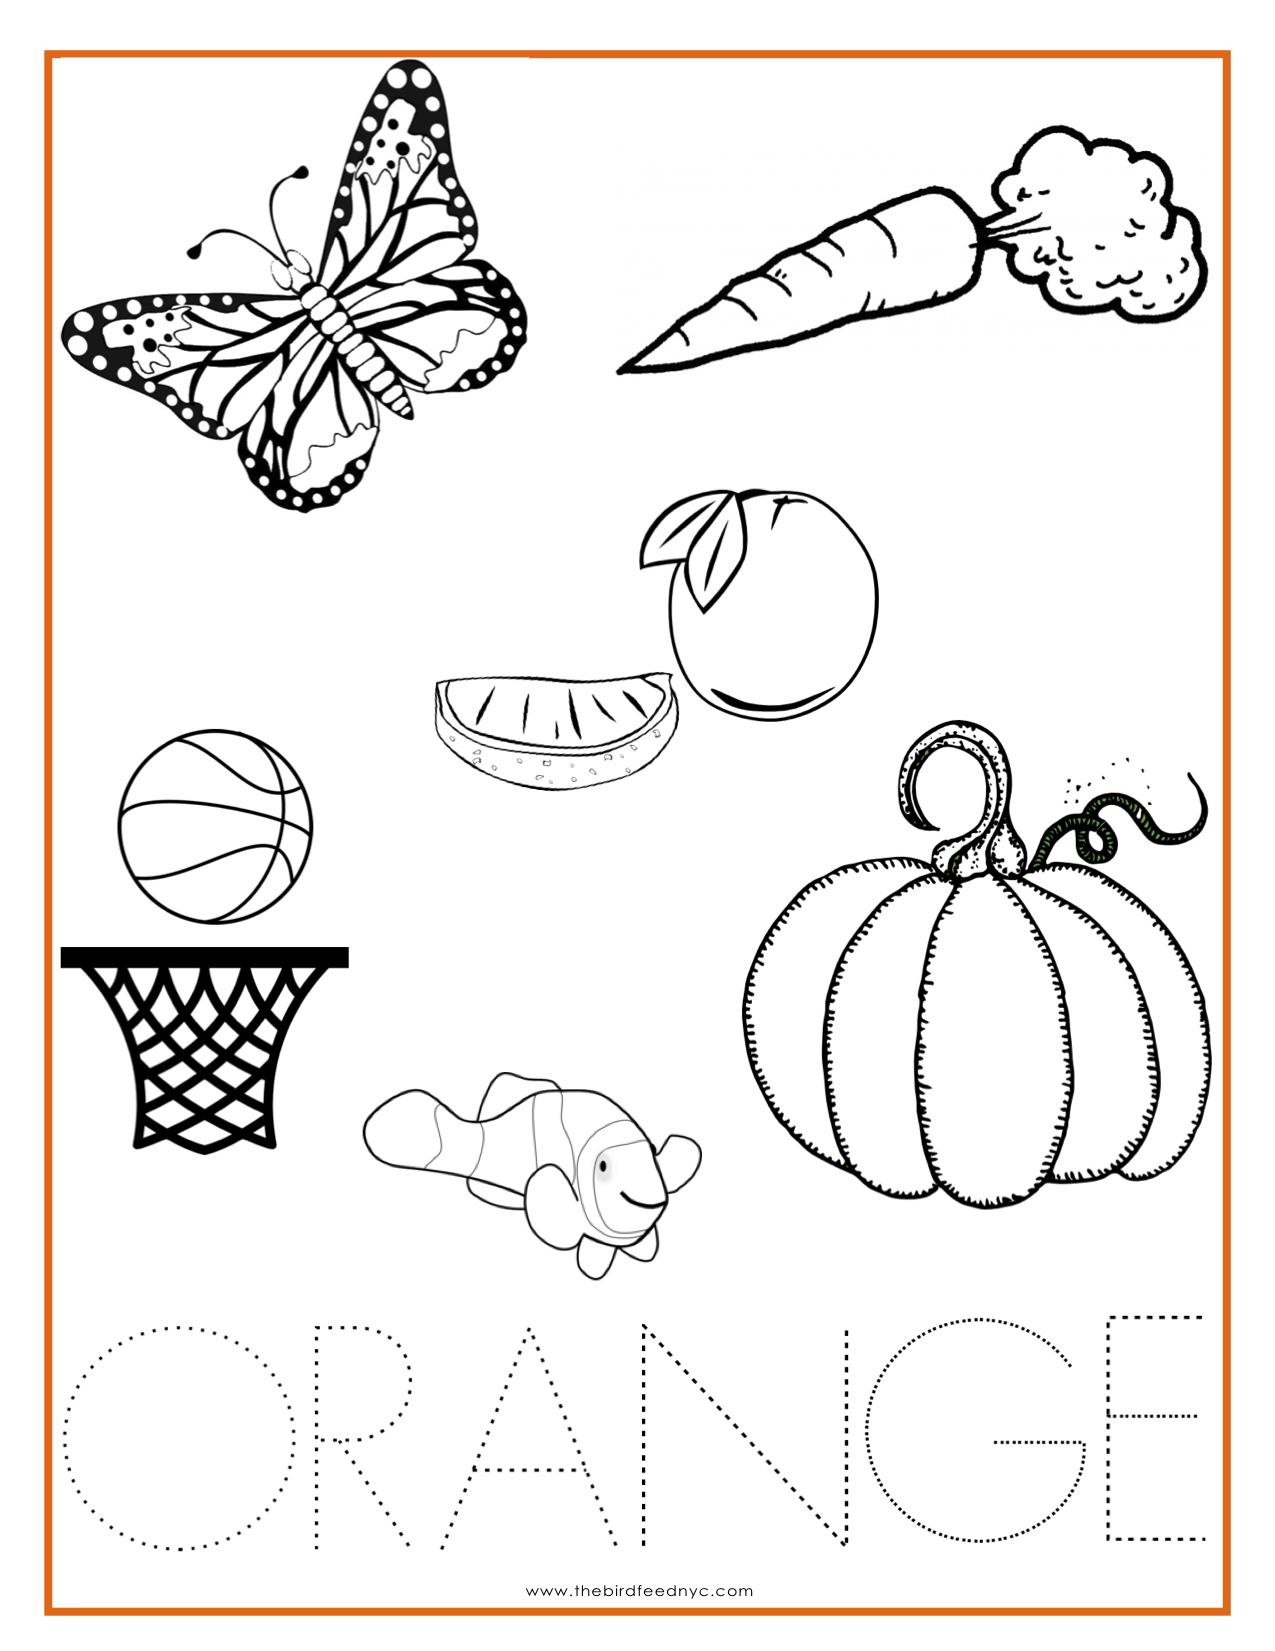 send a pictures or scans of your completed coloring sheets - Colour In Sheet